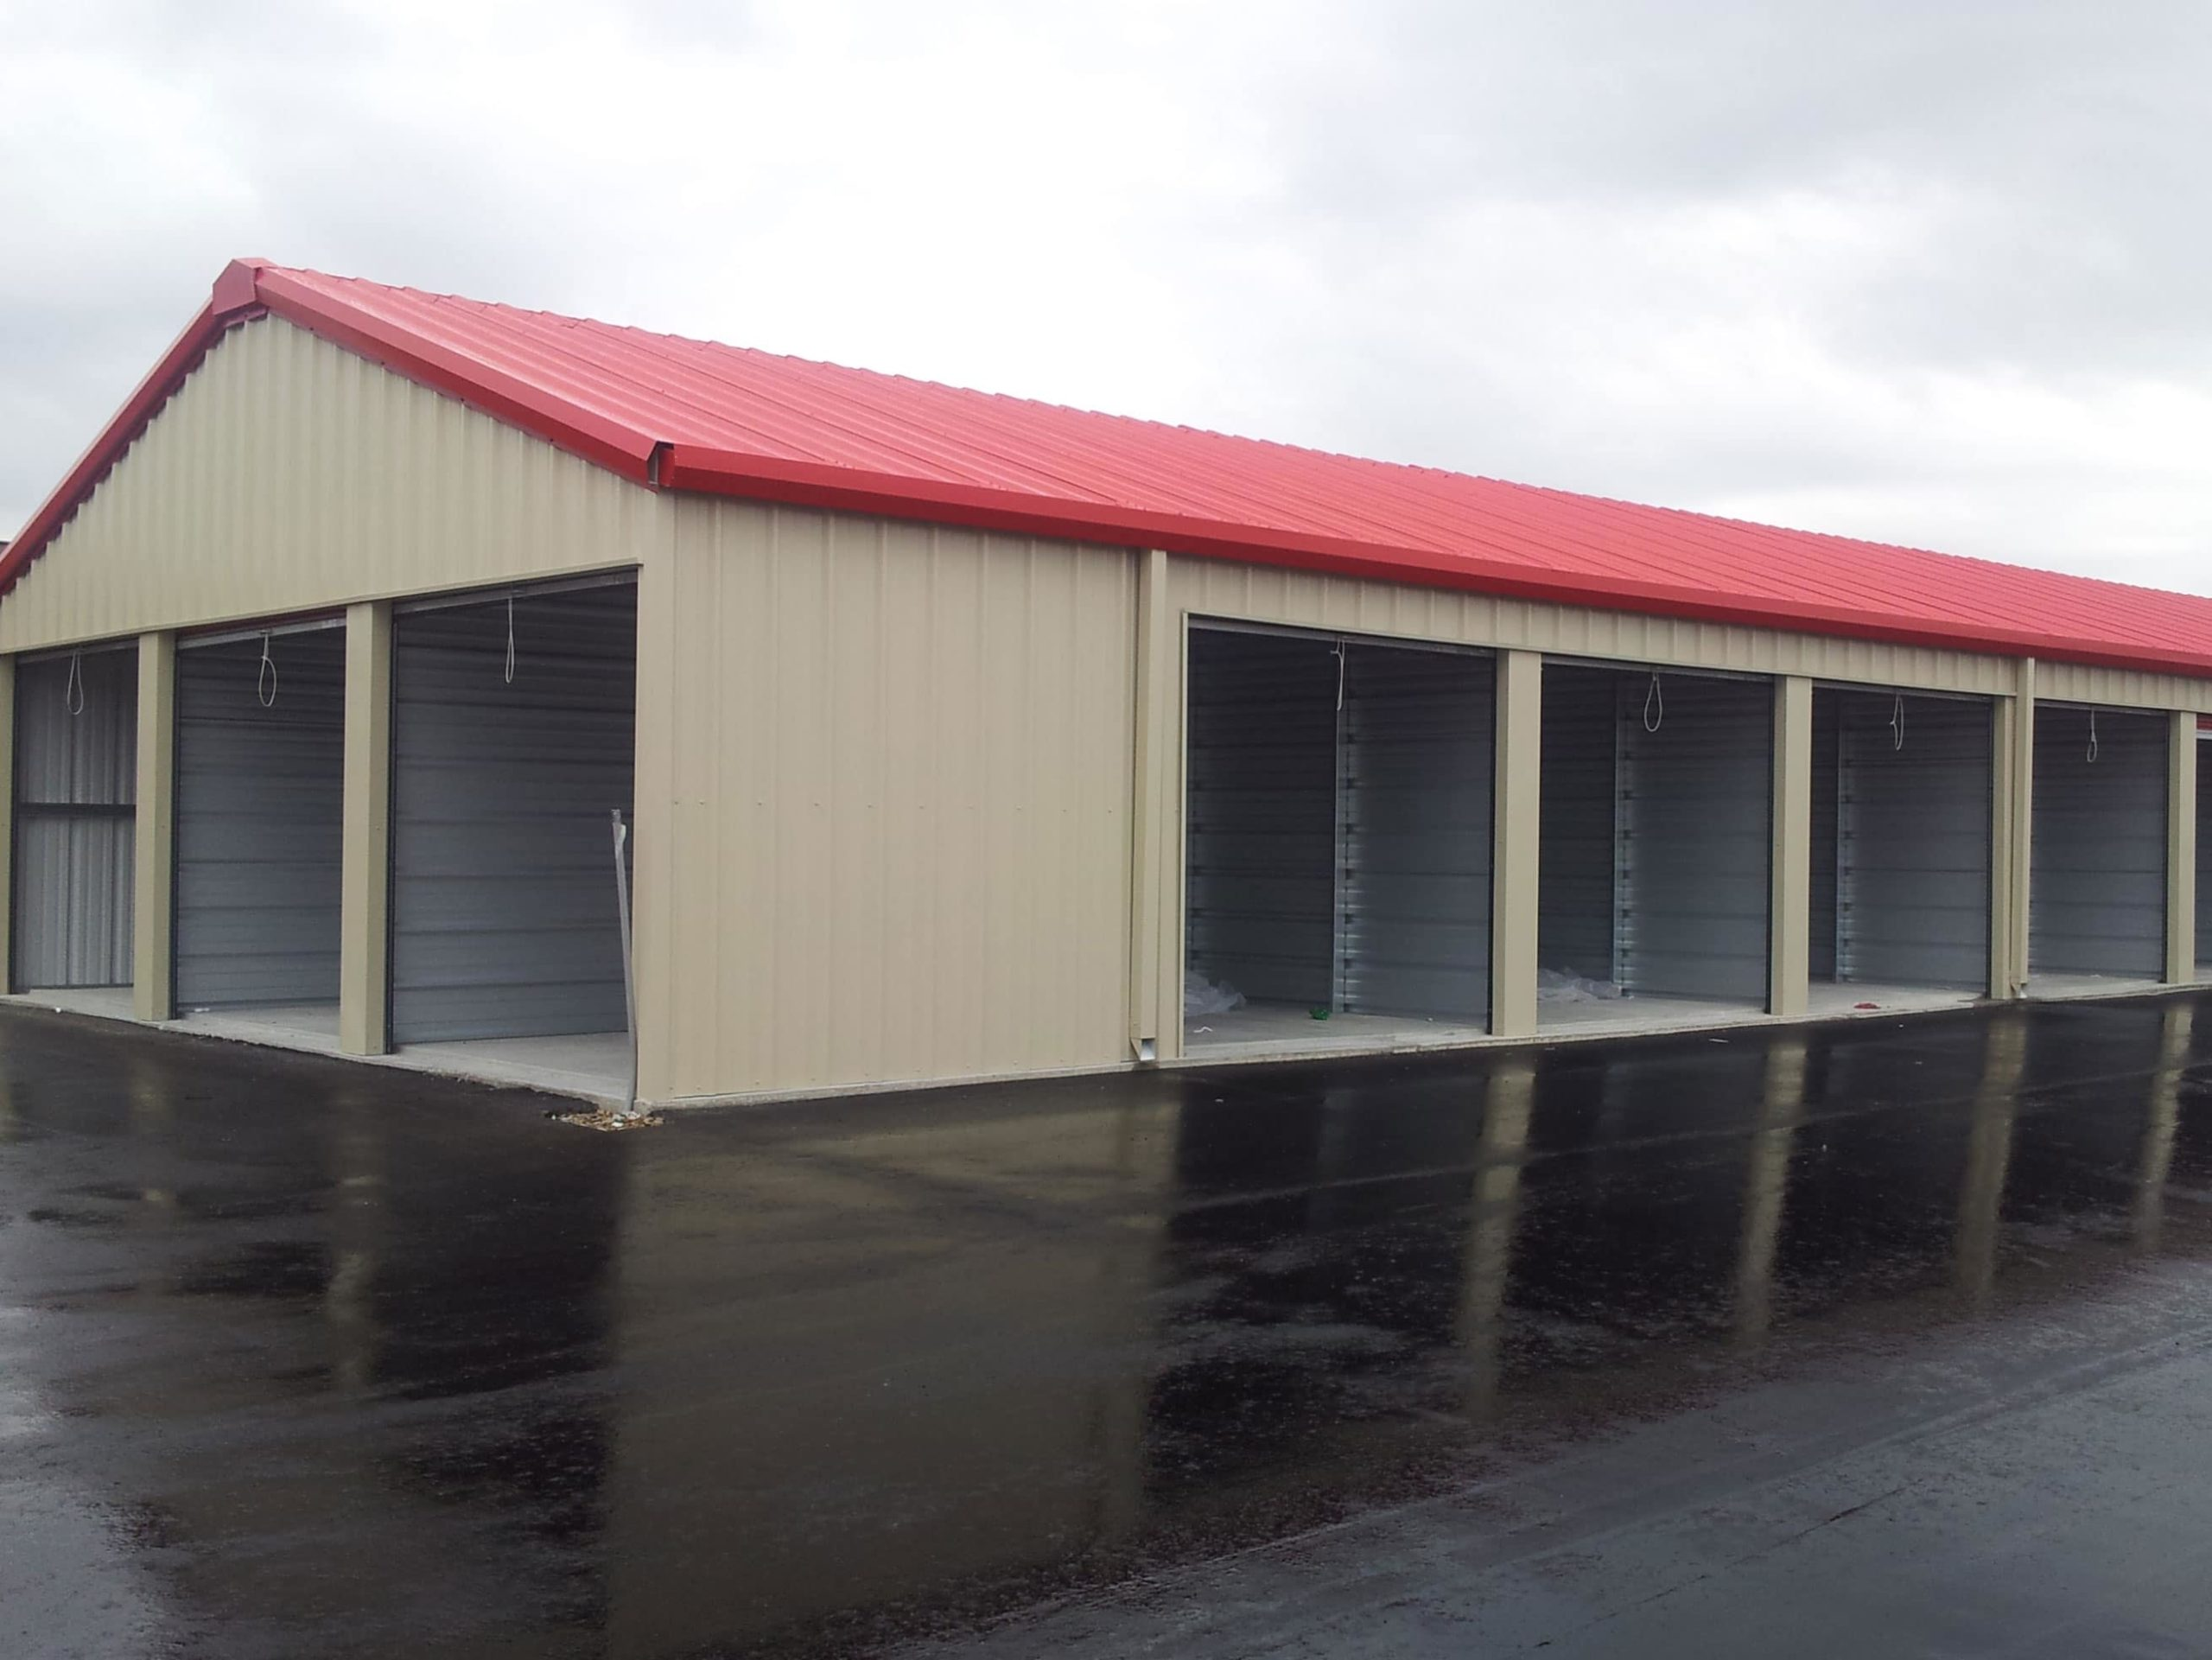 The Ultimate Guide to the Best Mini Storage Building Plans Design Ideas. Metal building with large space inside